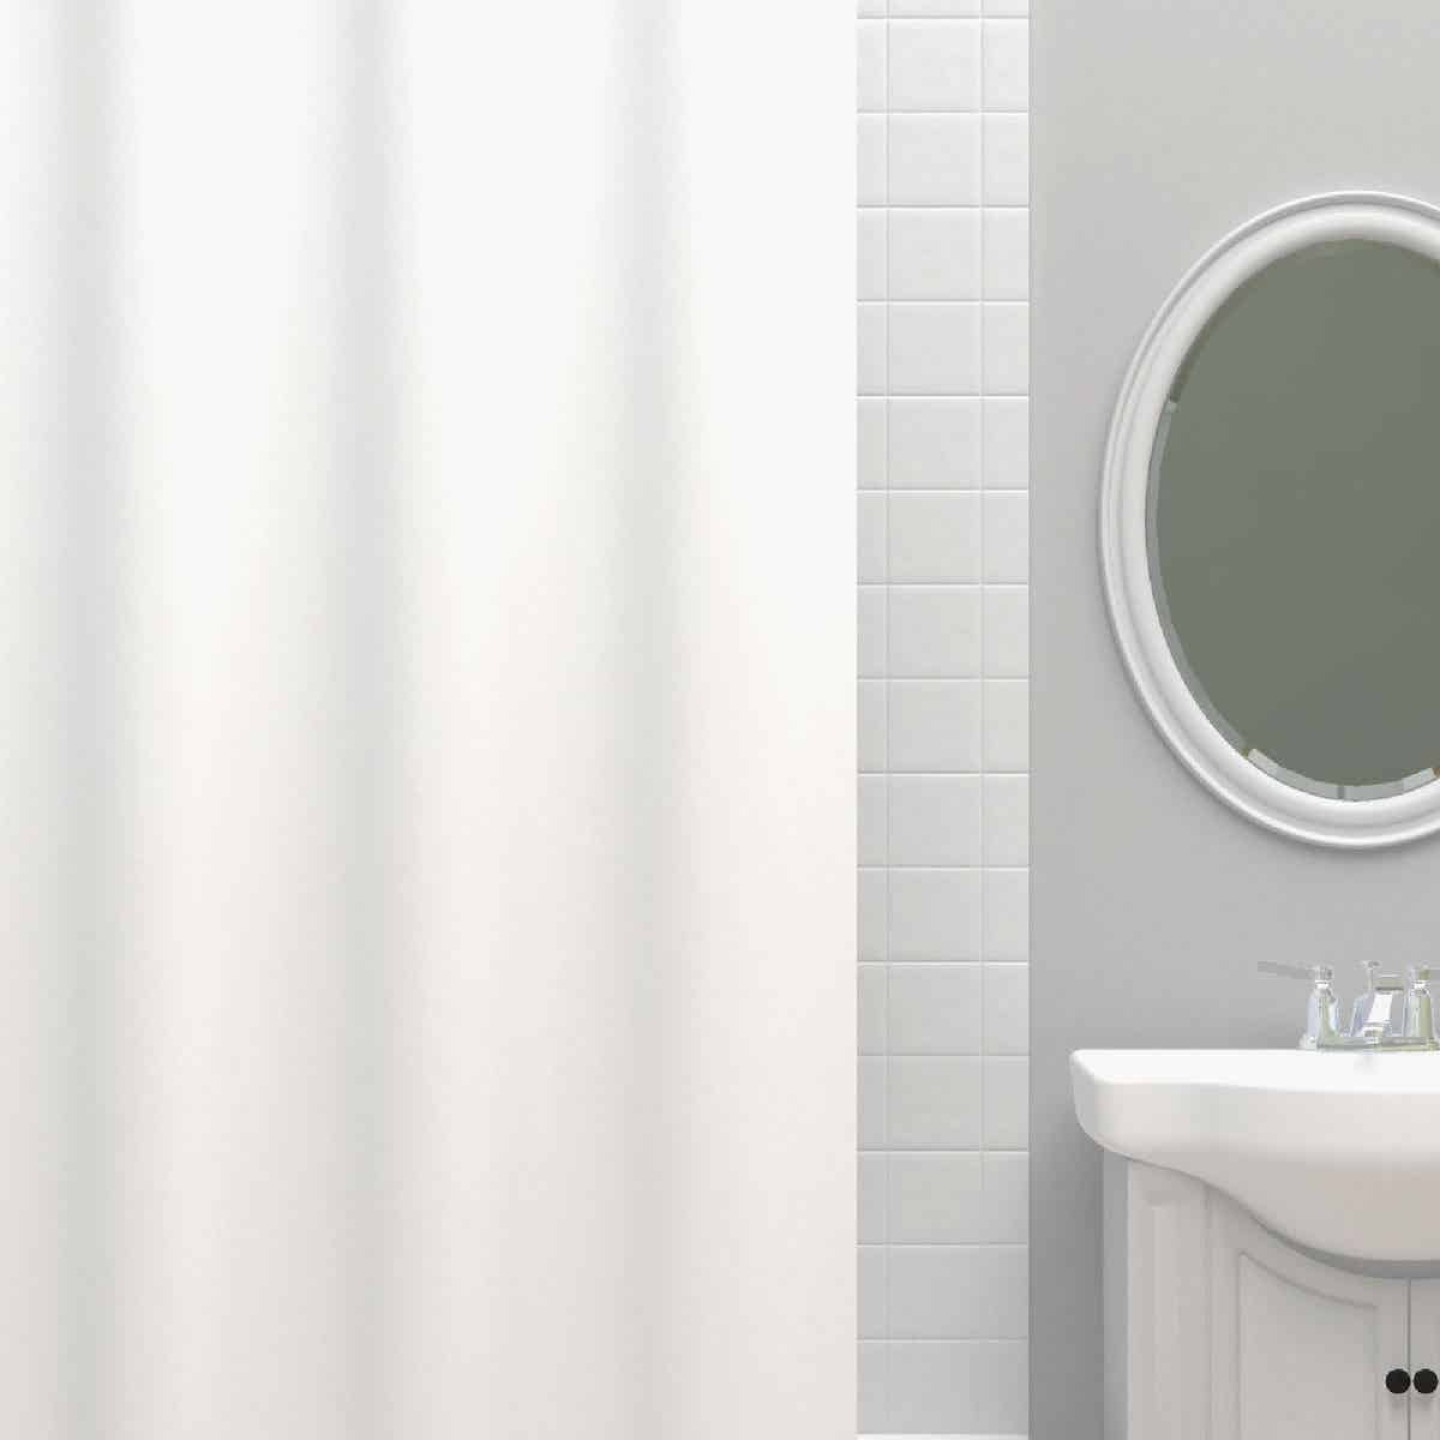 Zenna Home 70 In. x 72 In. White Heavyweight PEVA Shower Curtain Liner Image 1